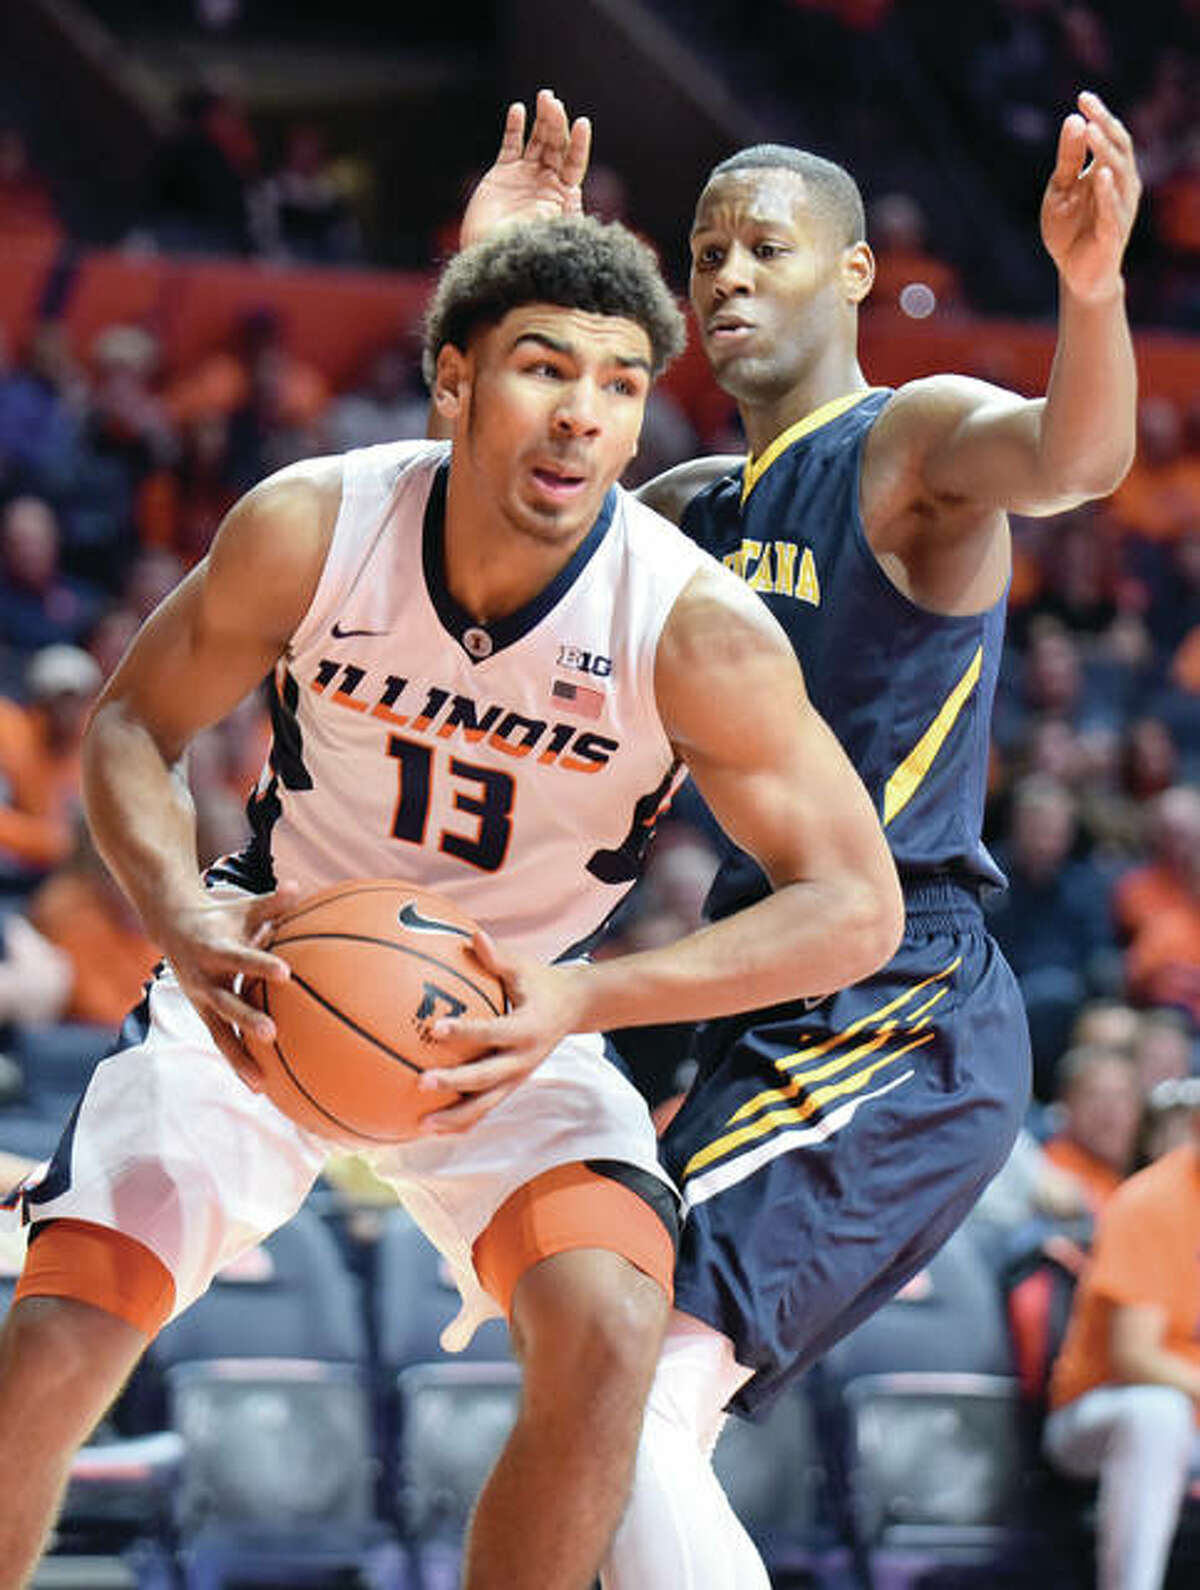 Illinois' Mark Smith (13), a freshman from Edwardsville, moves past Augustana's Chrishawn Orange during the first half of Wednesday night's game at the State Farm Center in Champaign. Smith scored 13 points and was one of five Illini in double figures.